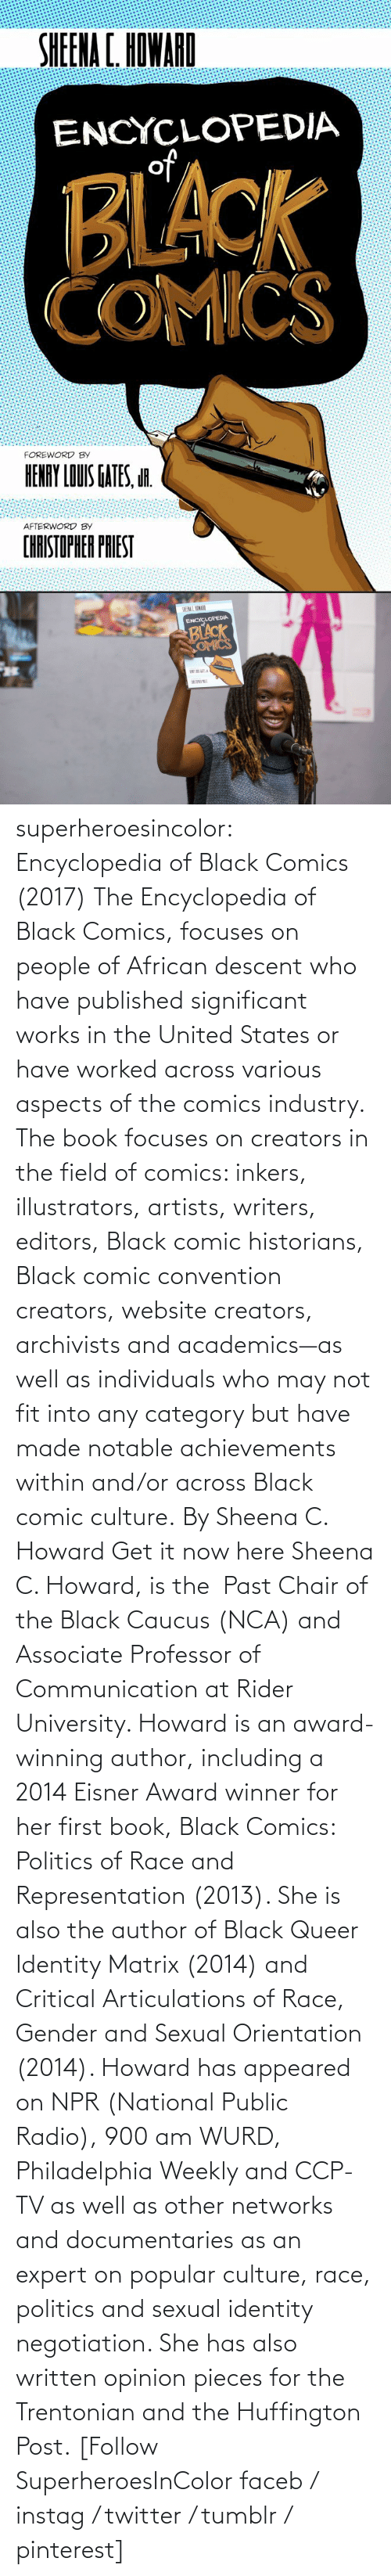 Sexual: superheroesincolor: Encyclopedia of Black Comics (2017) The Encyclopedia of Black Comics, focuses on people of African descent who have published significant works in the United States or have worked across various aspects of the comics industry.  The book focuses on creators in the field of comics: inkers, illustrators, artists, writers, editors, Black comic historians, Black comic convention creators, website creators, archivists and academics—as well as individuals who may not fit into any category but have made notable achievements within and/or across Black comic culture. By Sheena C. Howard Get it now here  Sheena C. Howard, is the  Past Chair of the Black Caucus (NCA) and Associate Professor of Communication at Rider University. Howard is an award-winning author, including a 2014 Eisner Award winner for her first book, Black Comics: Politics of Race and Representation (2013). She is also the author of Black Queer Identity Matrix (2014) and Critical Articulations of Race, Gender and Sexual Orientation (2014). Howard has appeared on NPR (National Public Radio), 900 am WURD, Philadelphia Weekly and CCP-TV as well as other networks and documentaries as an expert on popular culture, race, politics and sexual identity negotiation. She has also written opinion pieces for the Trentonian and the Huffington Post.   [Follow SuperheroesInColor faceb / instag / twitter / tumblr / pinterest]